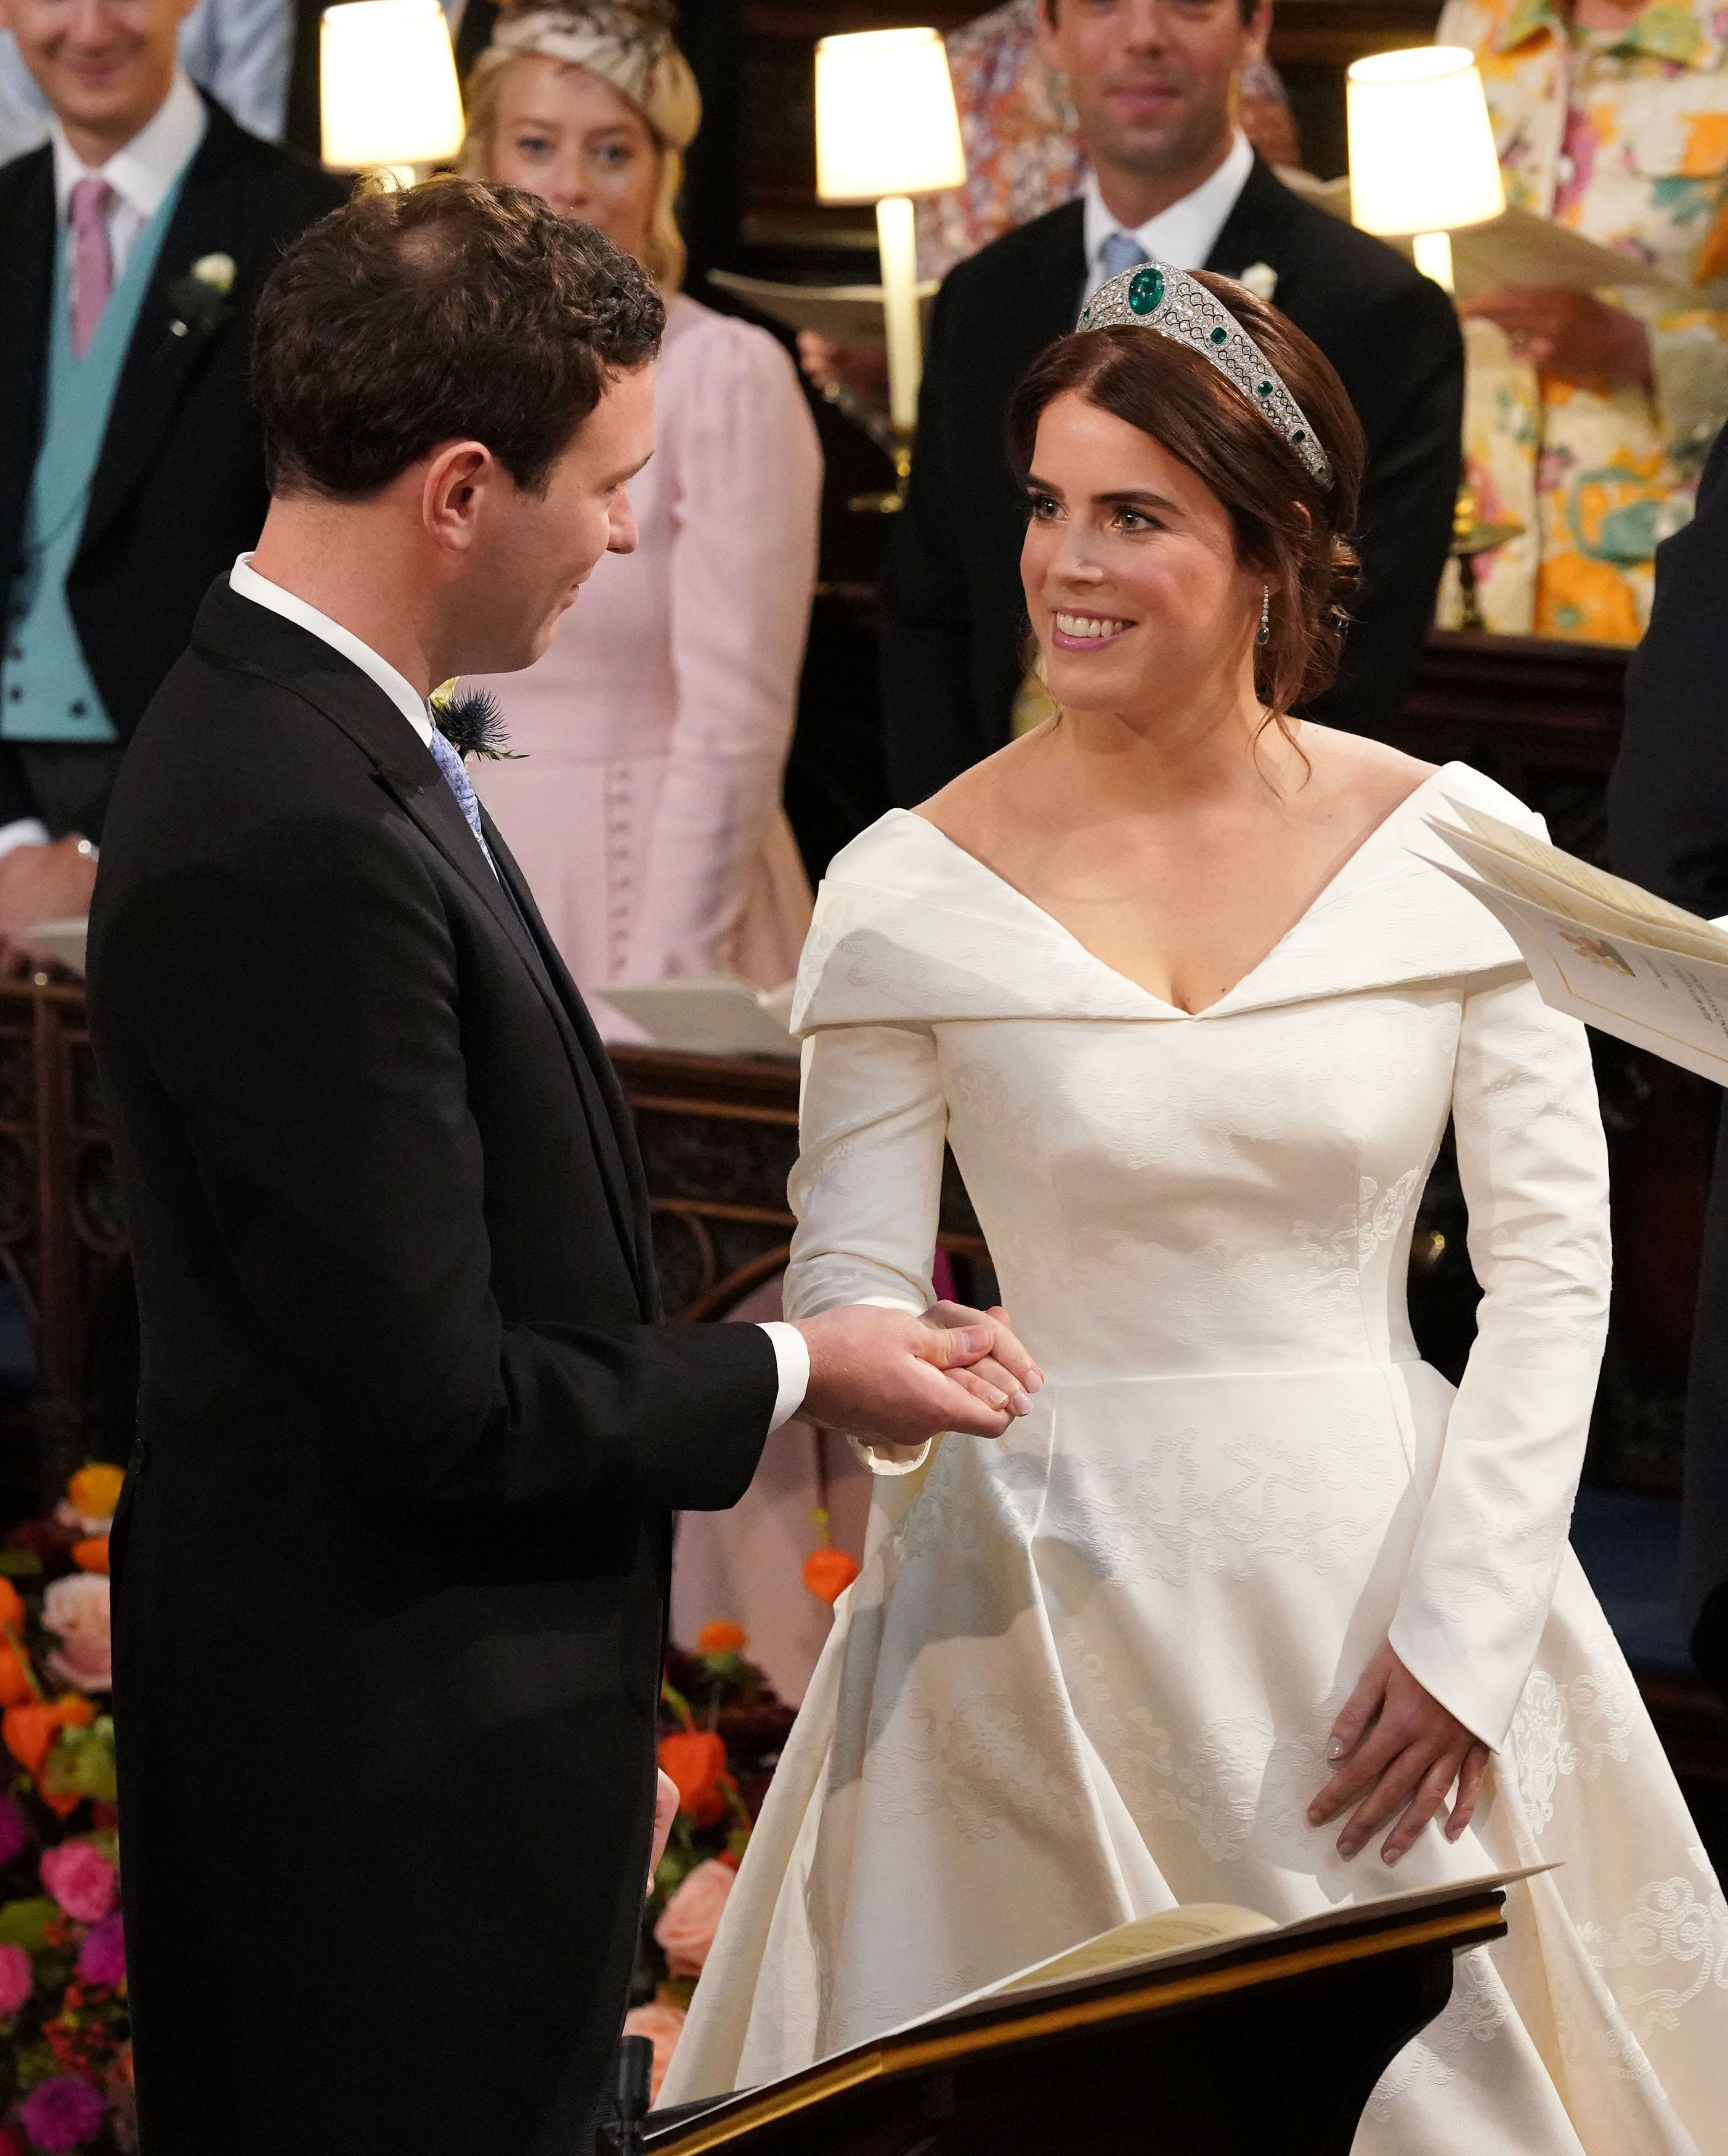 23 Major Moments You Missed At The Royal Wedding Princess Eugenie